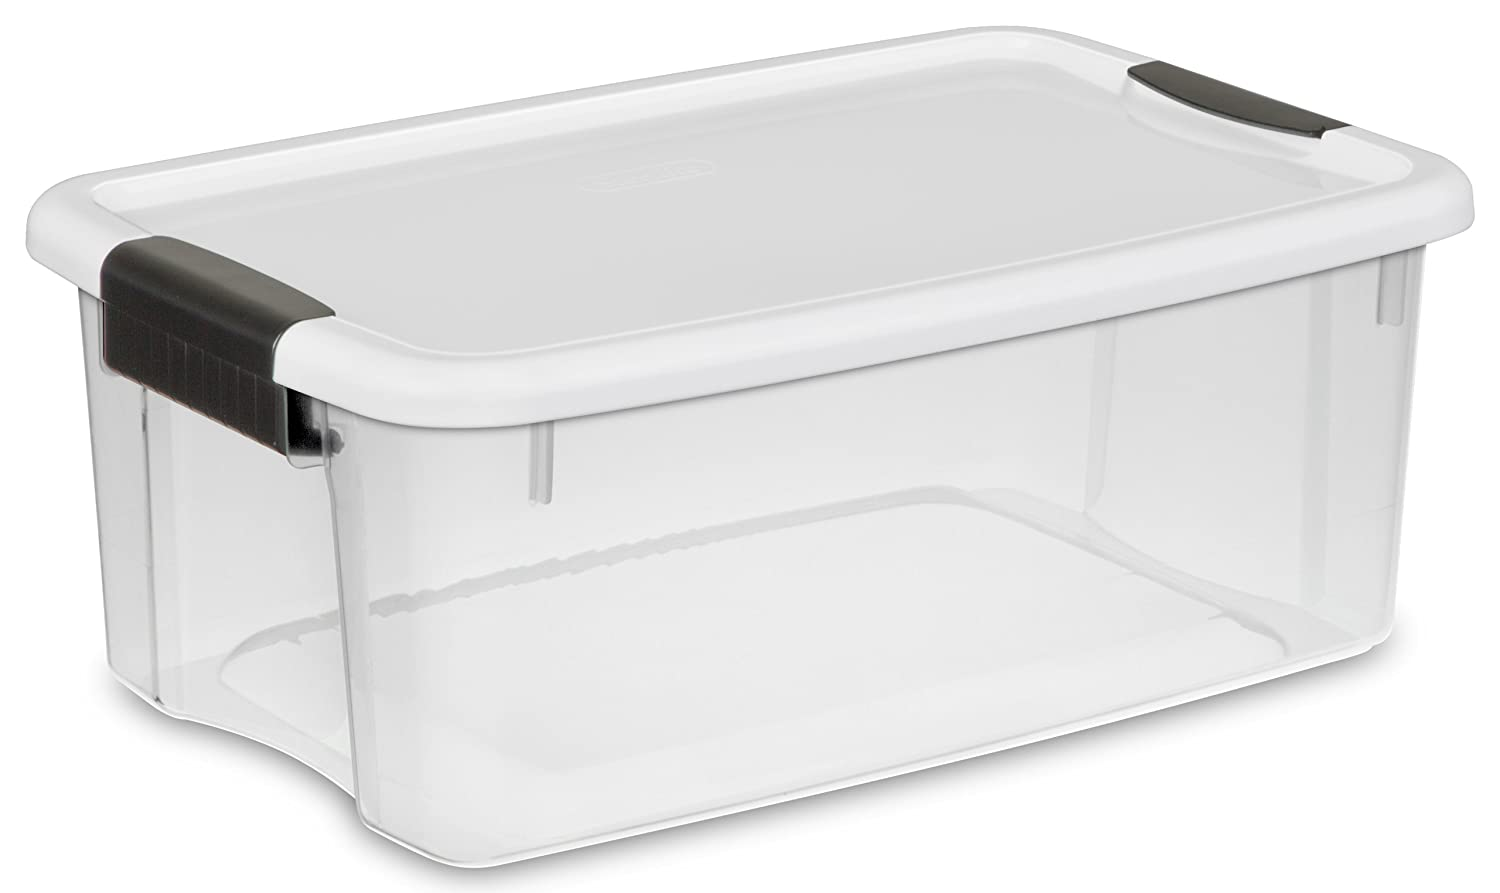 Amazon.com   STERILITE 19849806 18 Quart/17 Liter Ultra Latch Box, Clear  With A White Lid And Black Latches, 6 Pack   Lidded Home Storage Bins